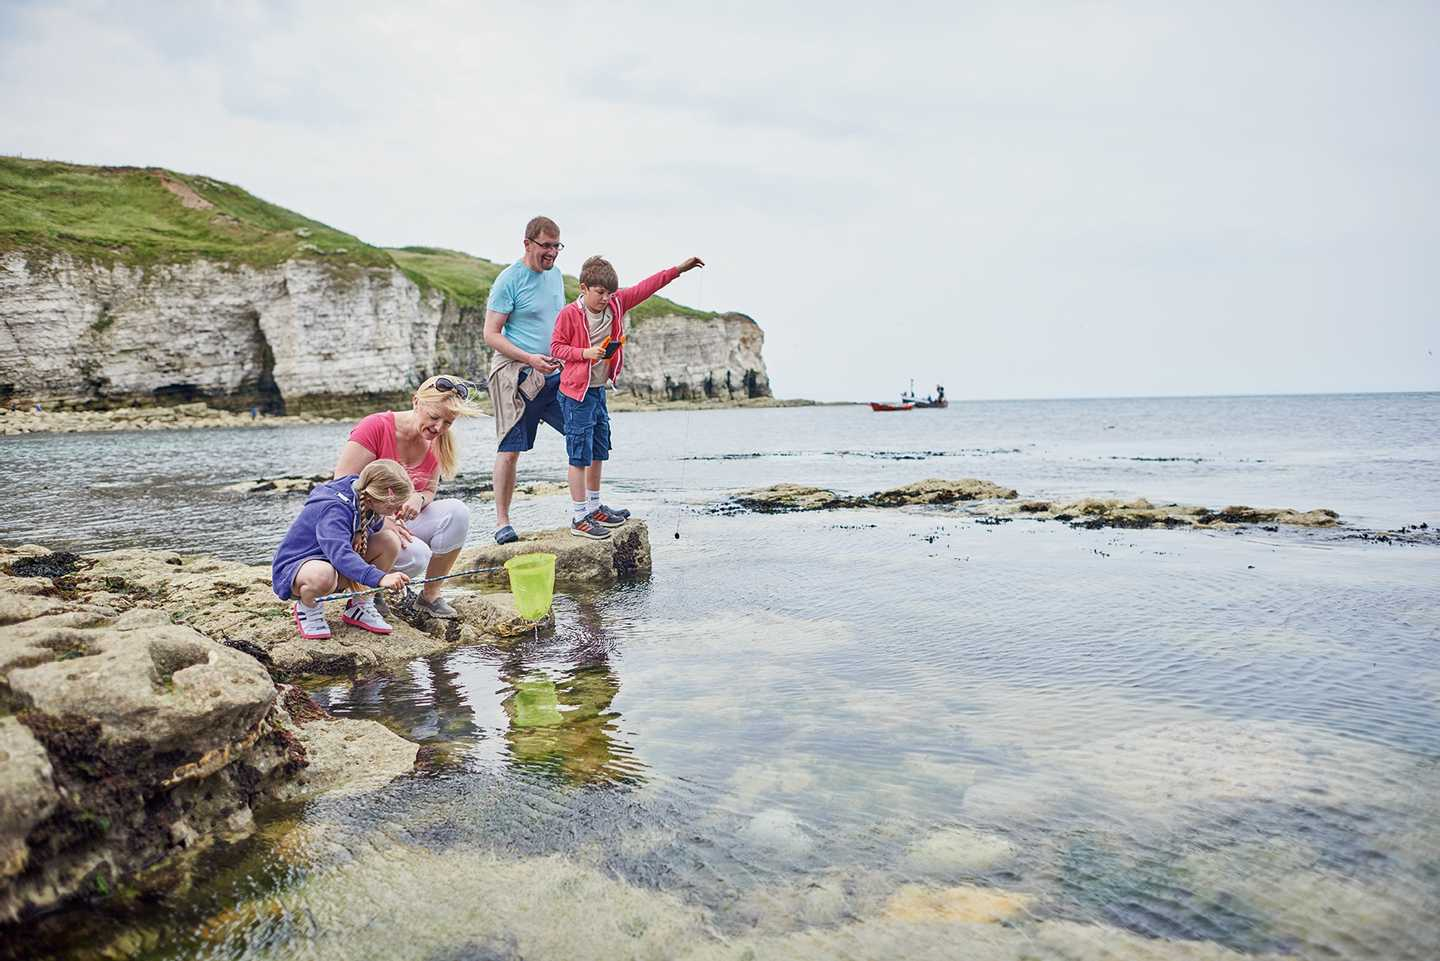 Guests rock pooling at the beach